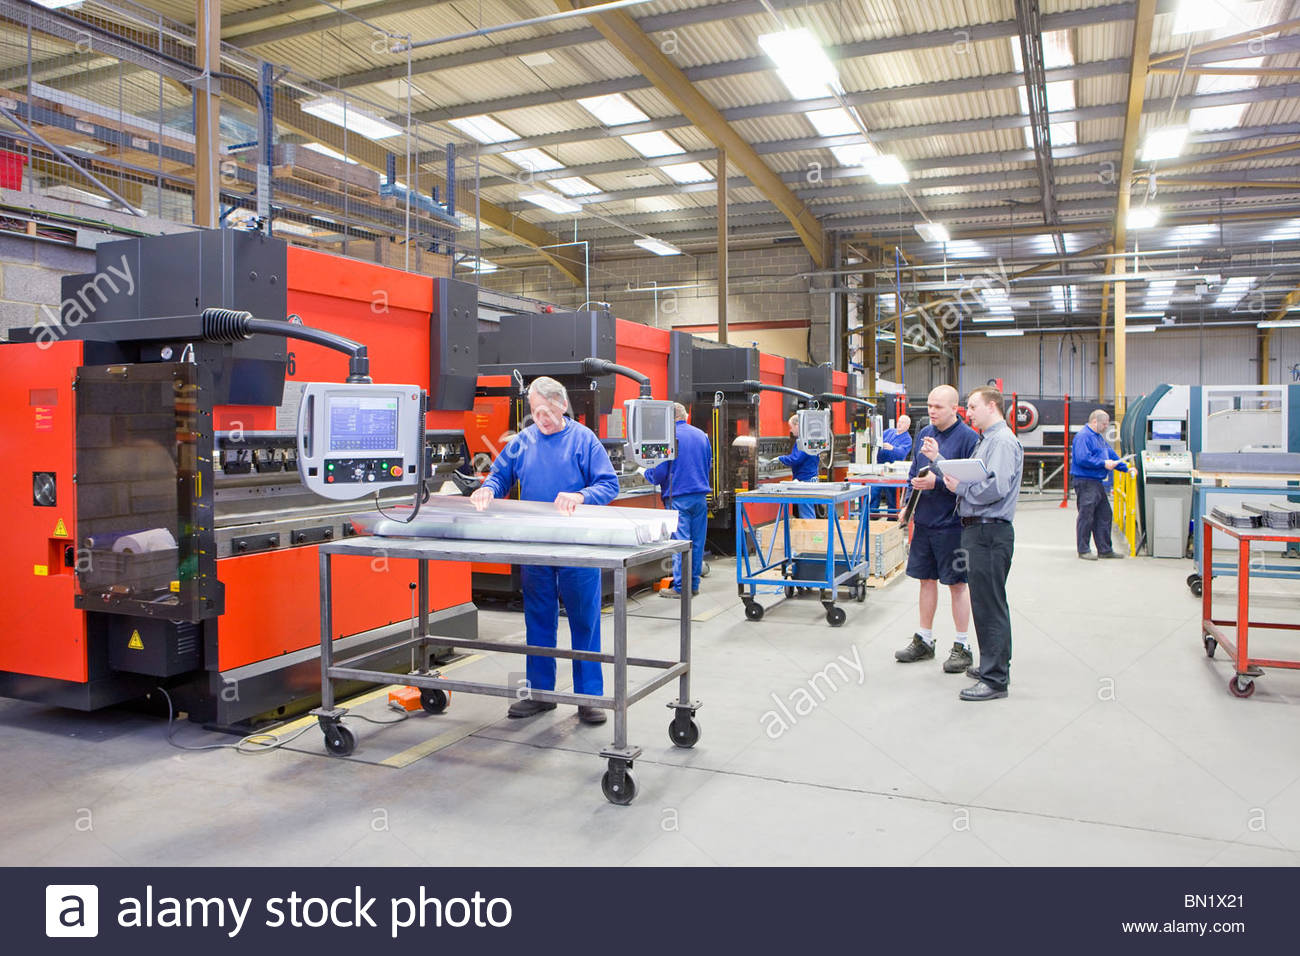 Workers and machinery in factory that manufactures aluminium light fittings - Stock Image